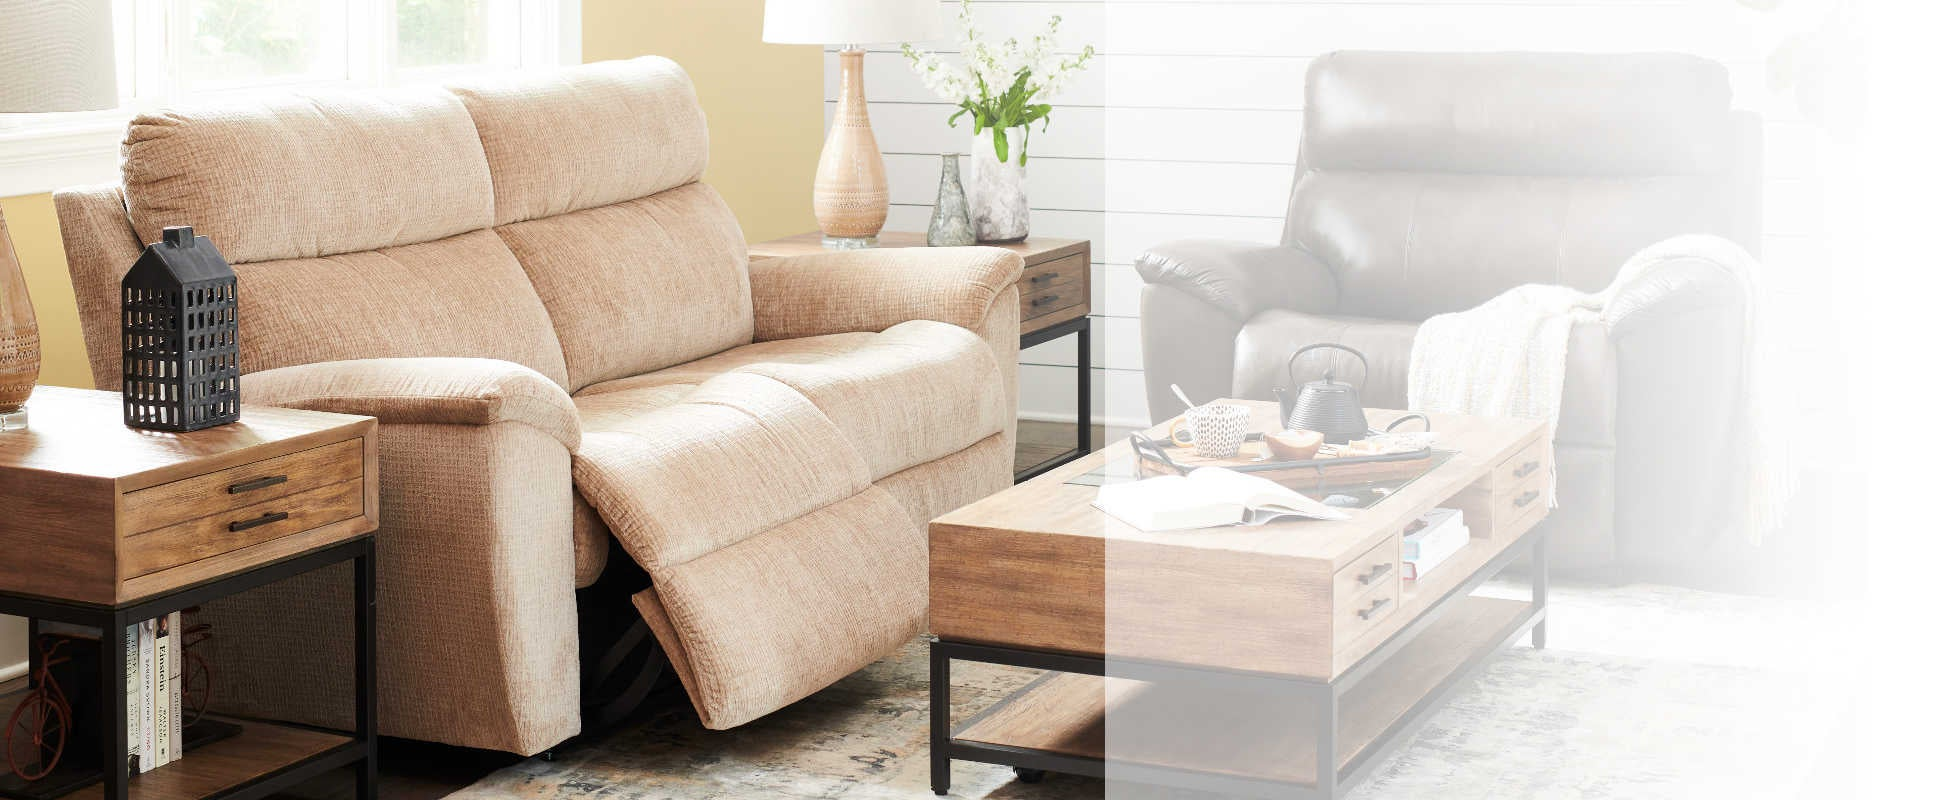 Reclining Sofas & Reclining Couches | La-Z-Boy